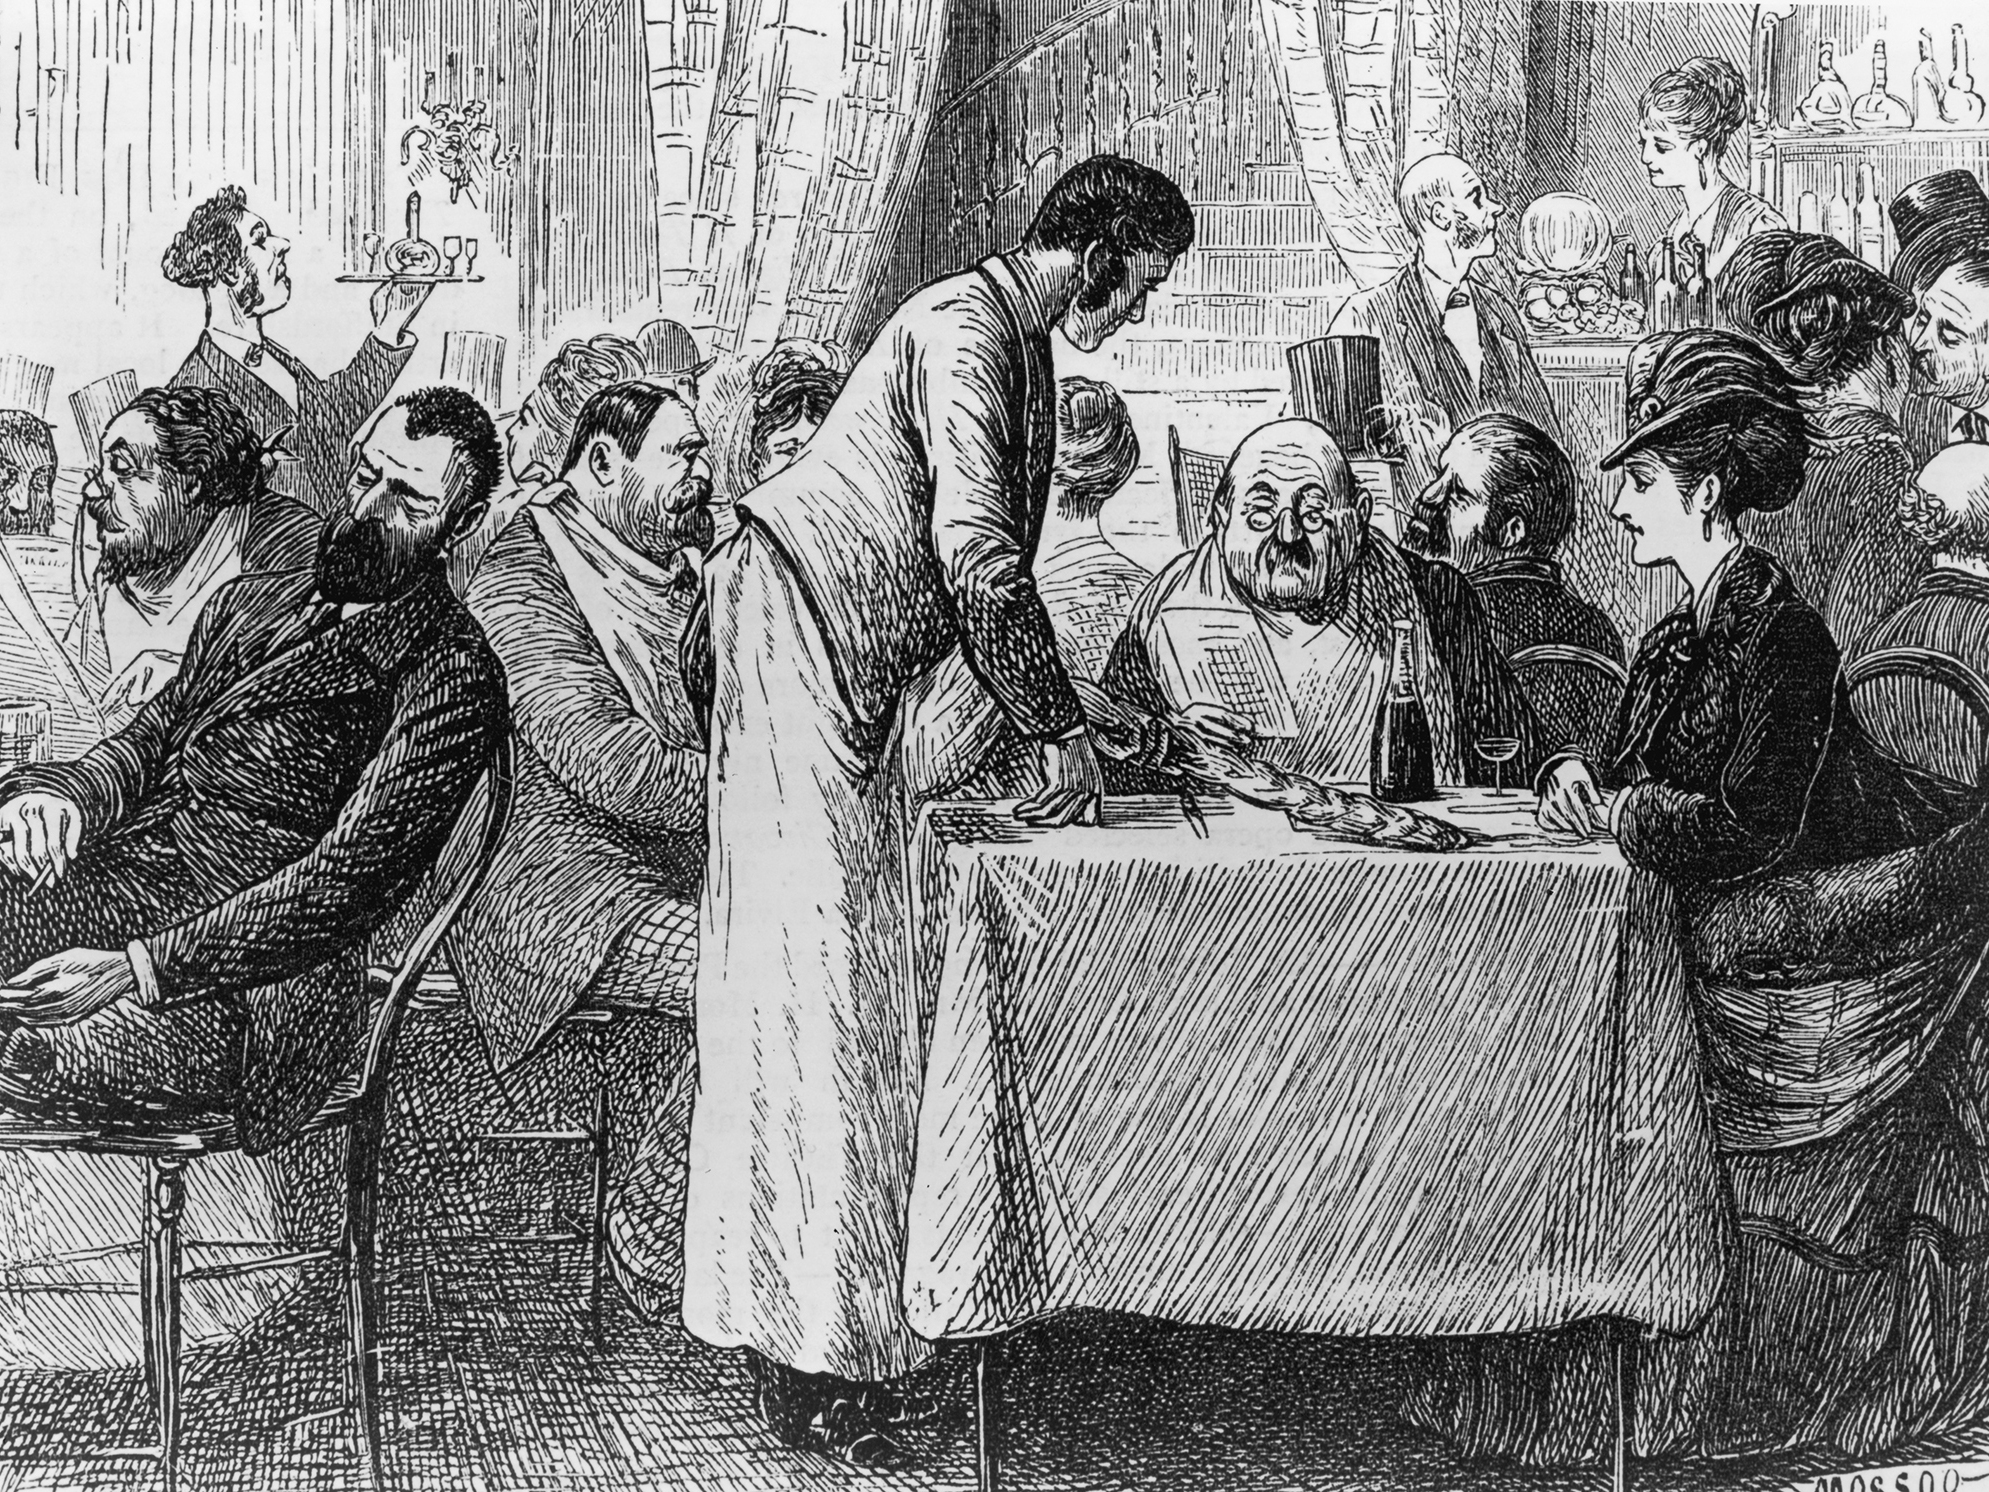 Imported from Europe, the custom of leaving gratuities began spreading in the U.S. post-Civil War. It was loathed as a master-serf custom that degraded America's democratic, anti-aristocratic ethic.